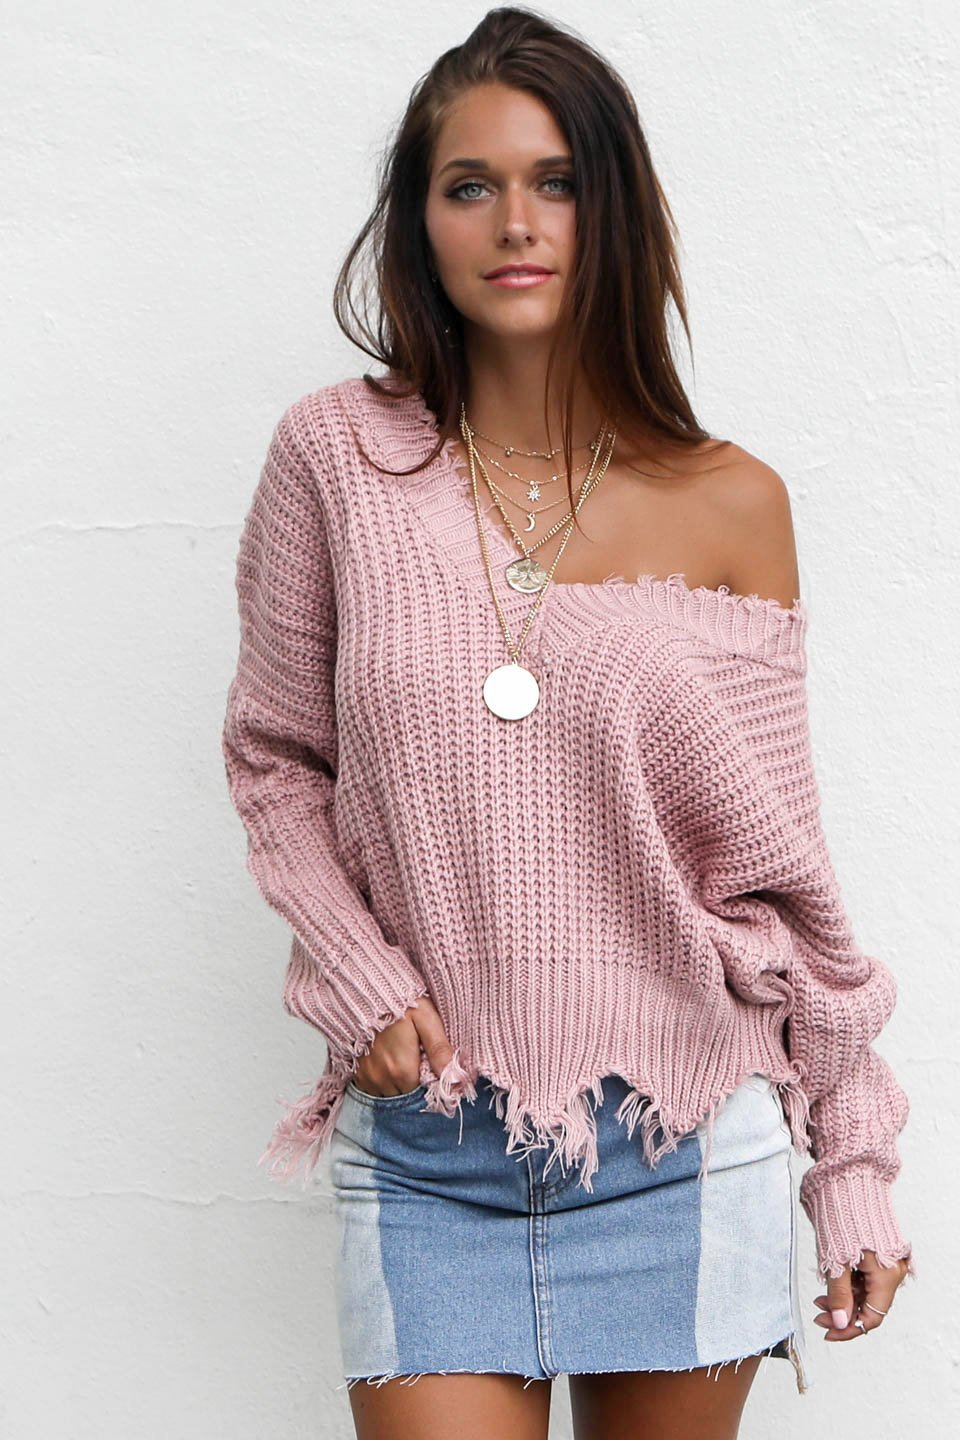 My One Shredded V-Neck Mauve Sweater